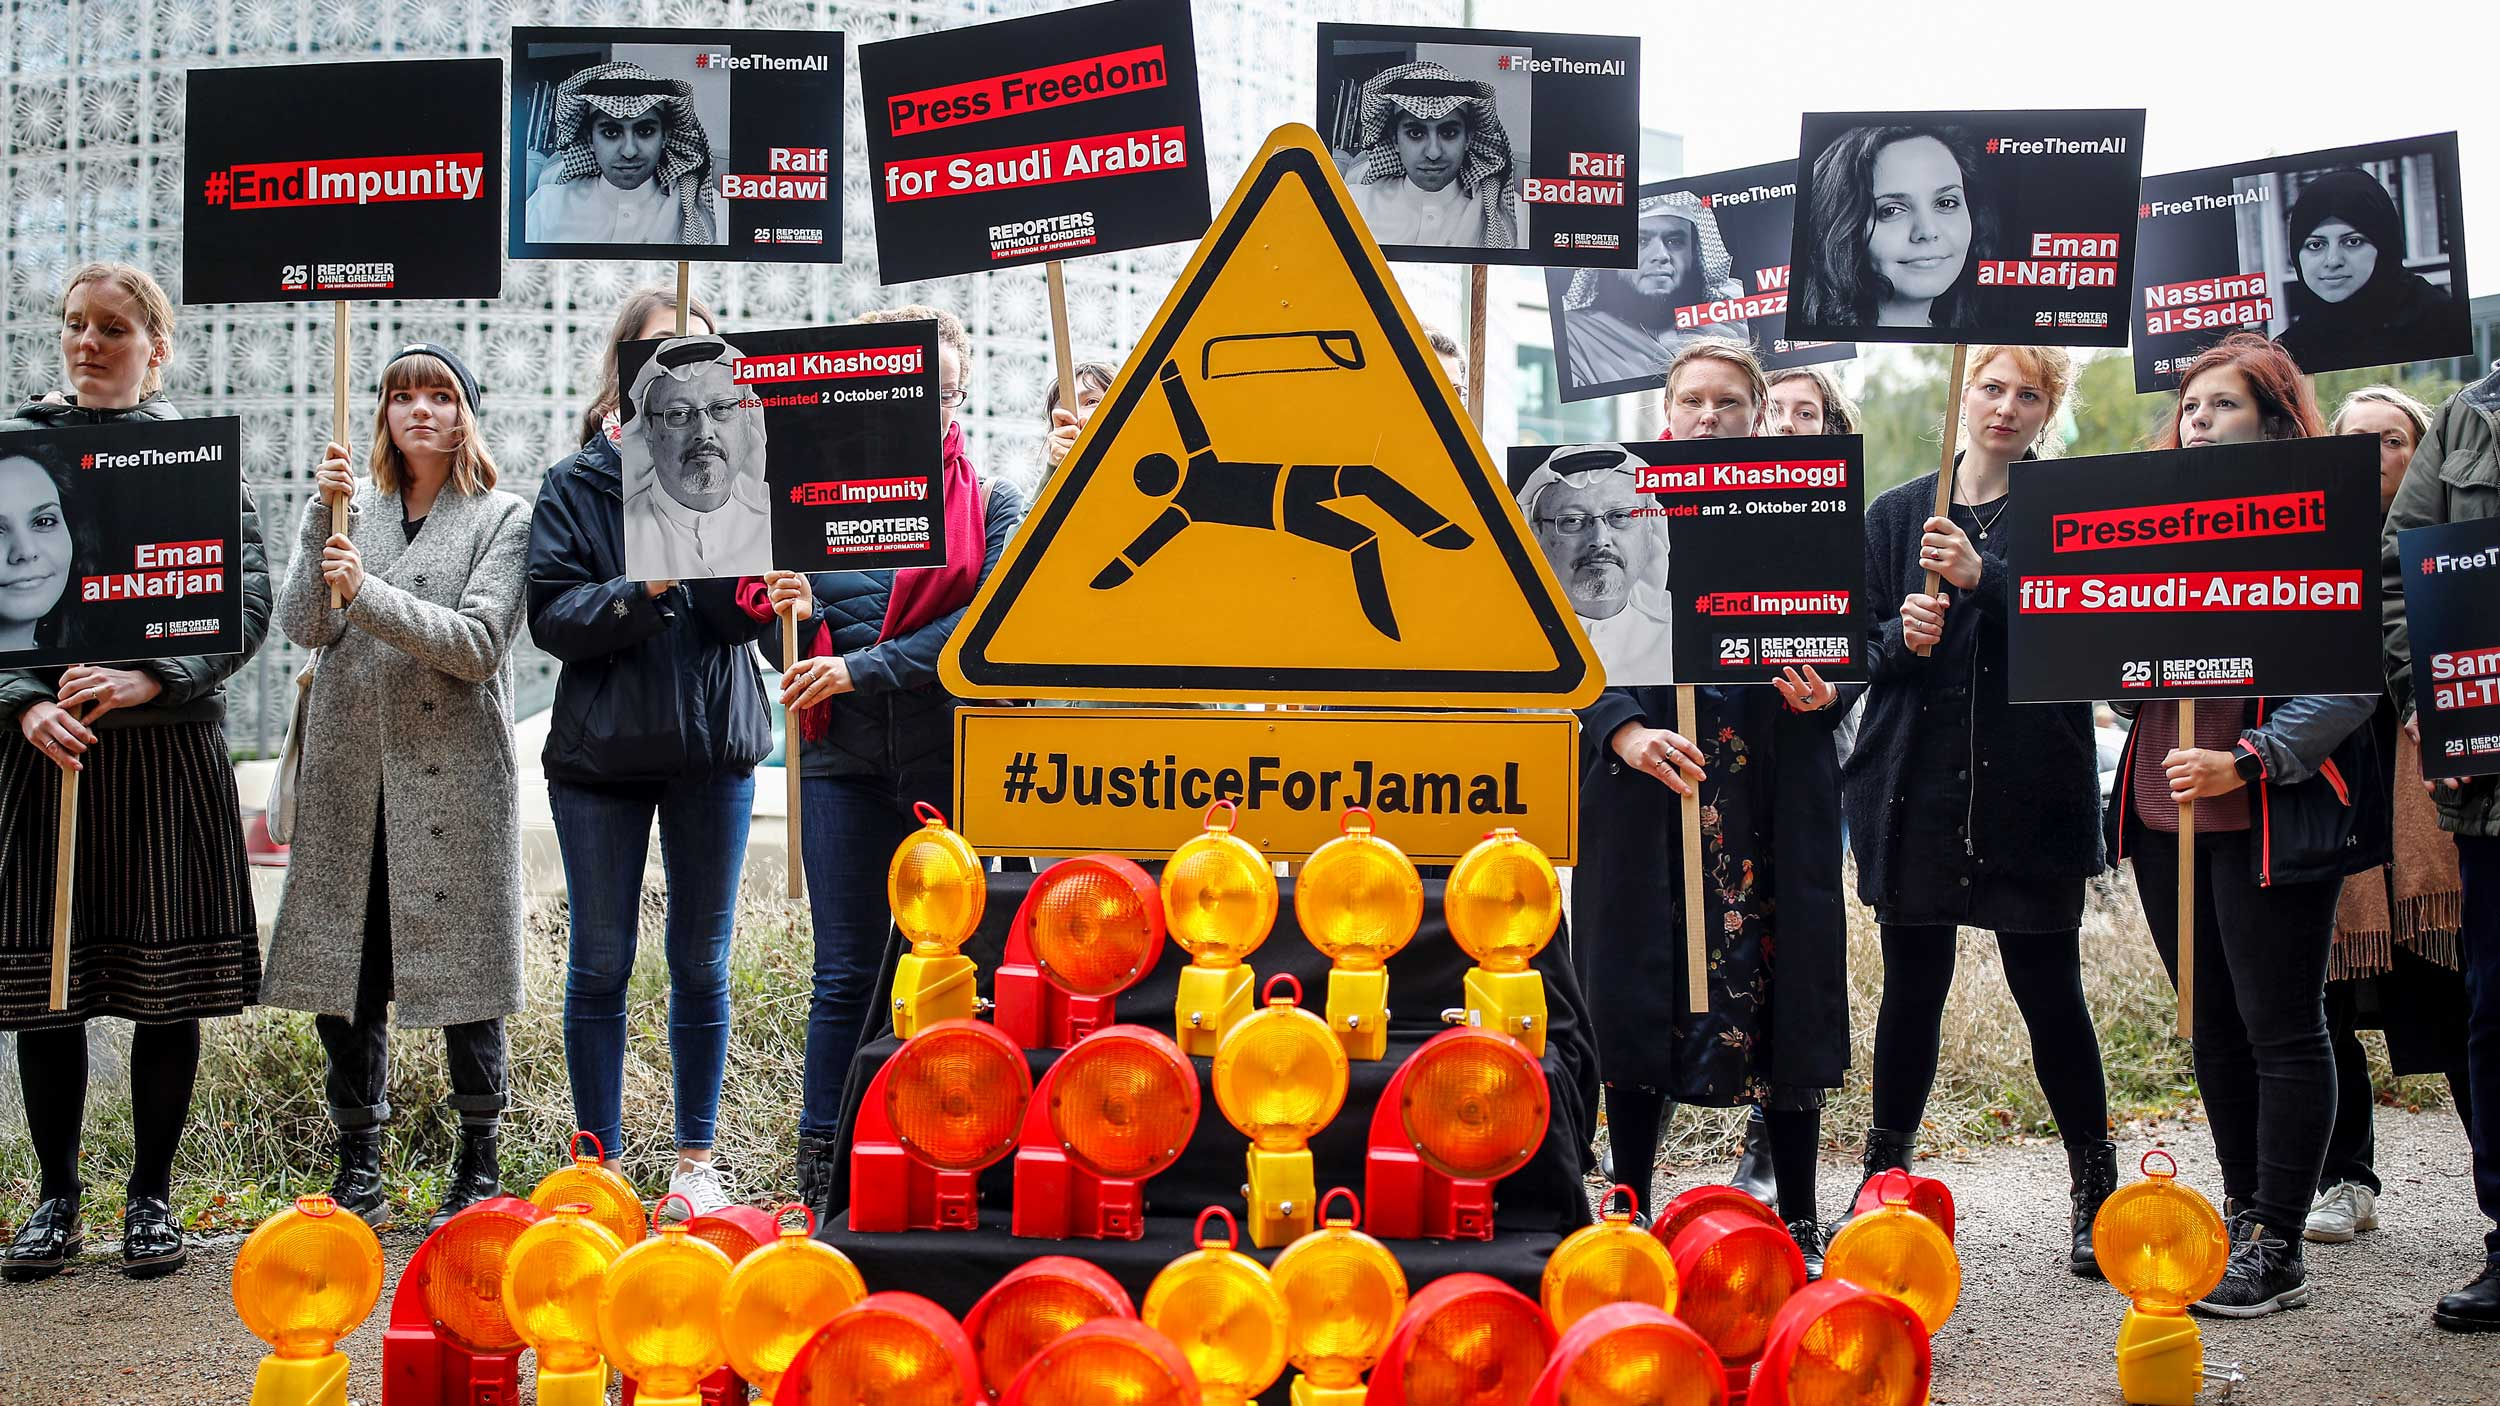 Protesters hold signs with images of Saudi journalists on them